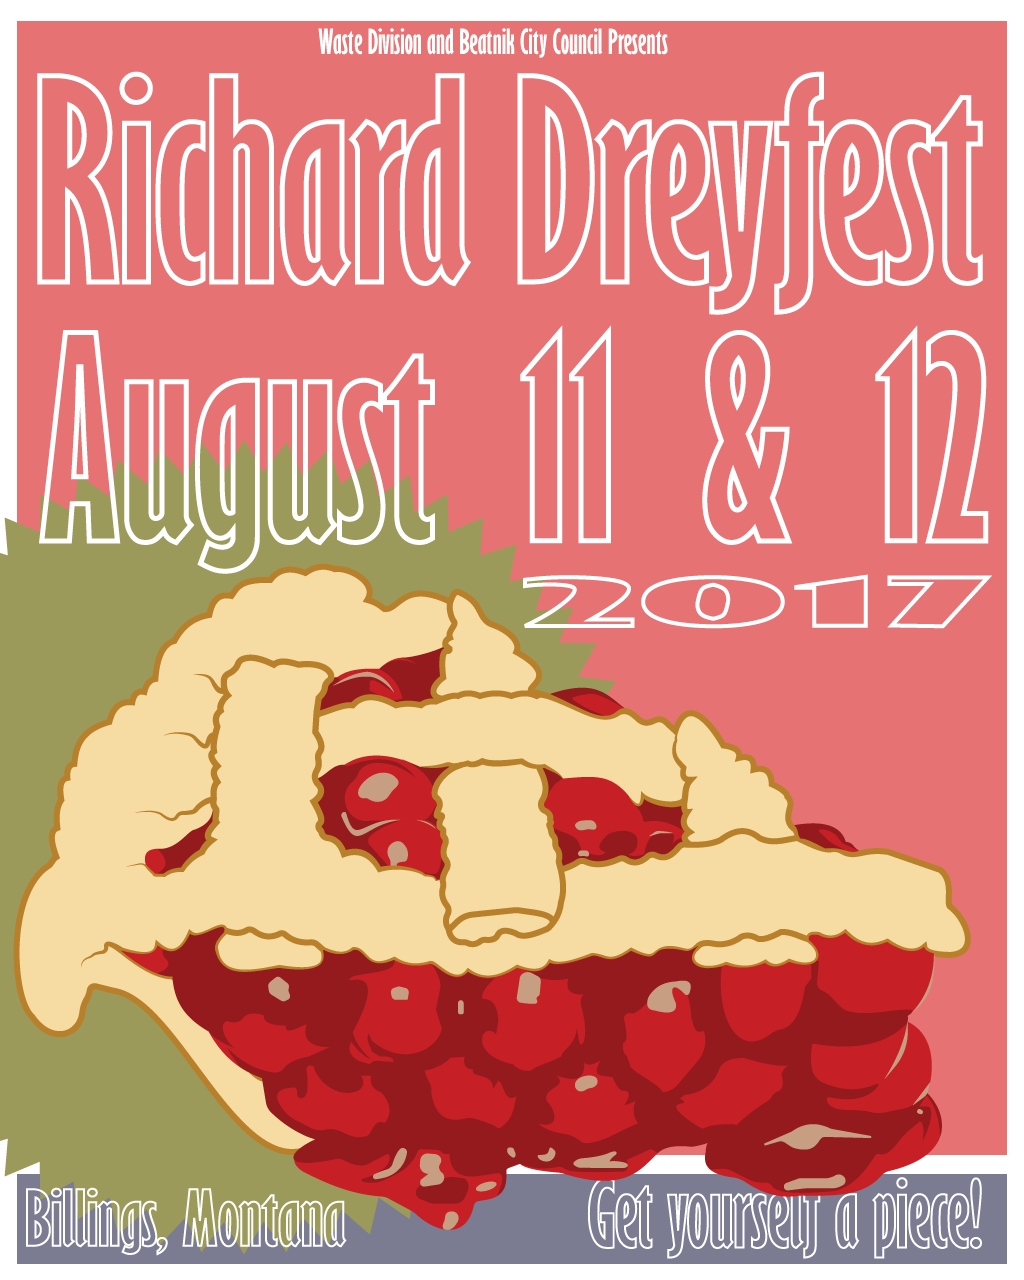 BCC is currently helping organize this year's Richard Dreyfest, a community arts festival based in Billings, MT. We hope to see you there!